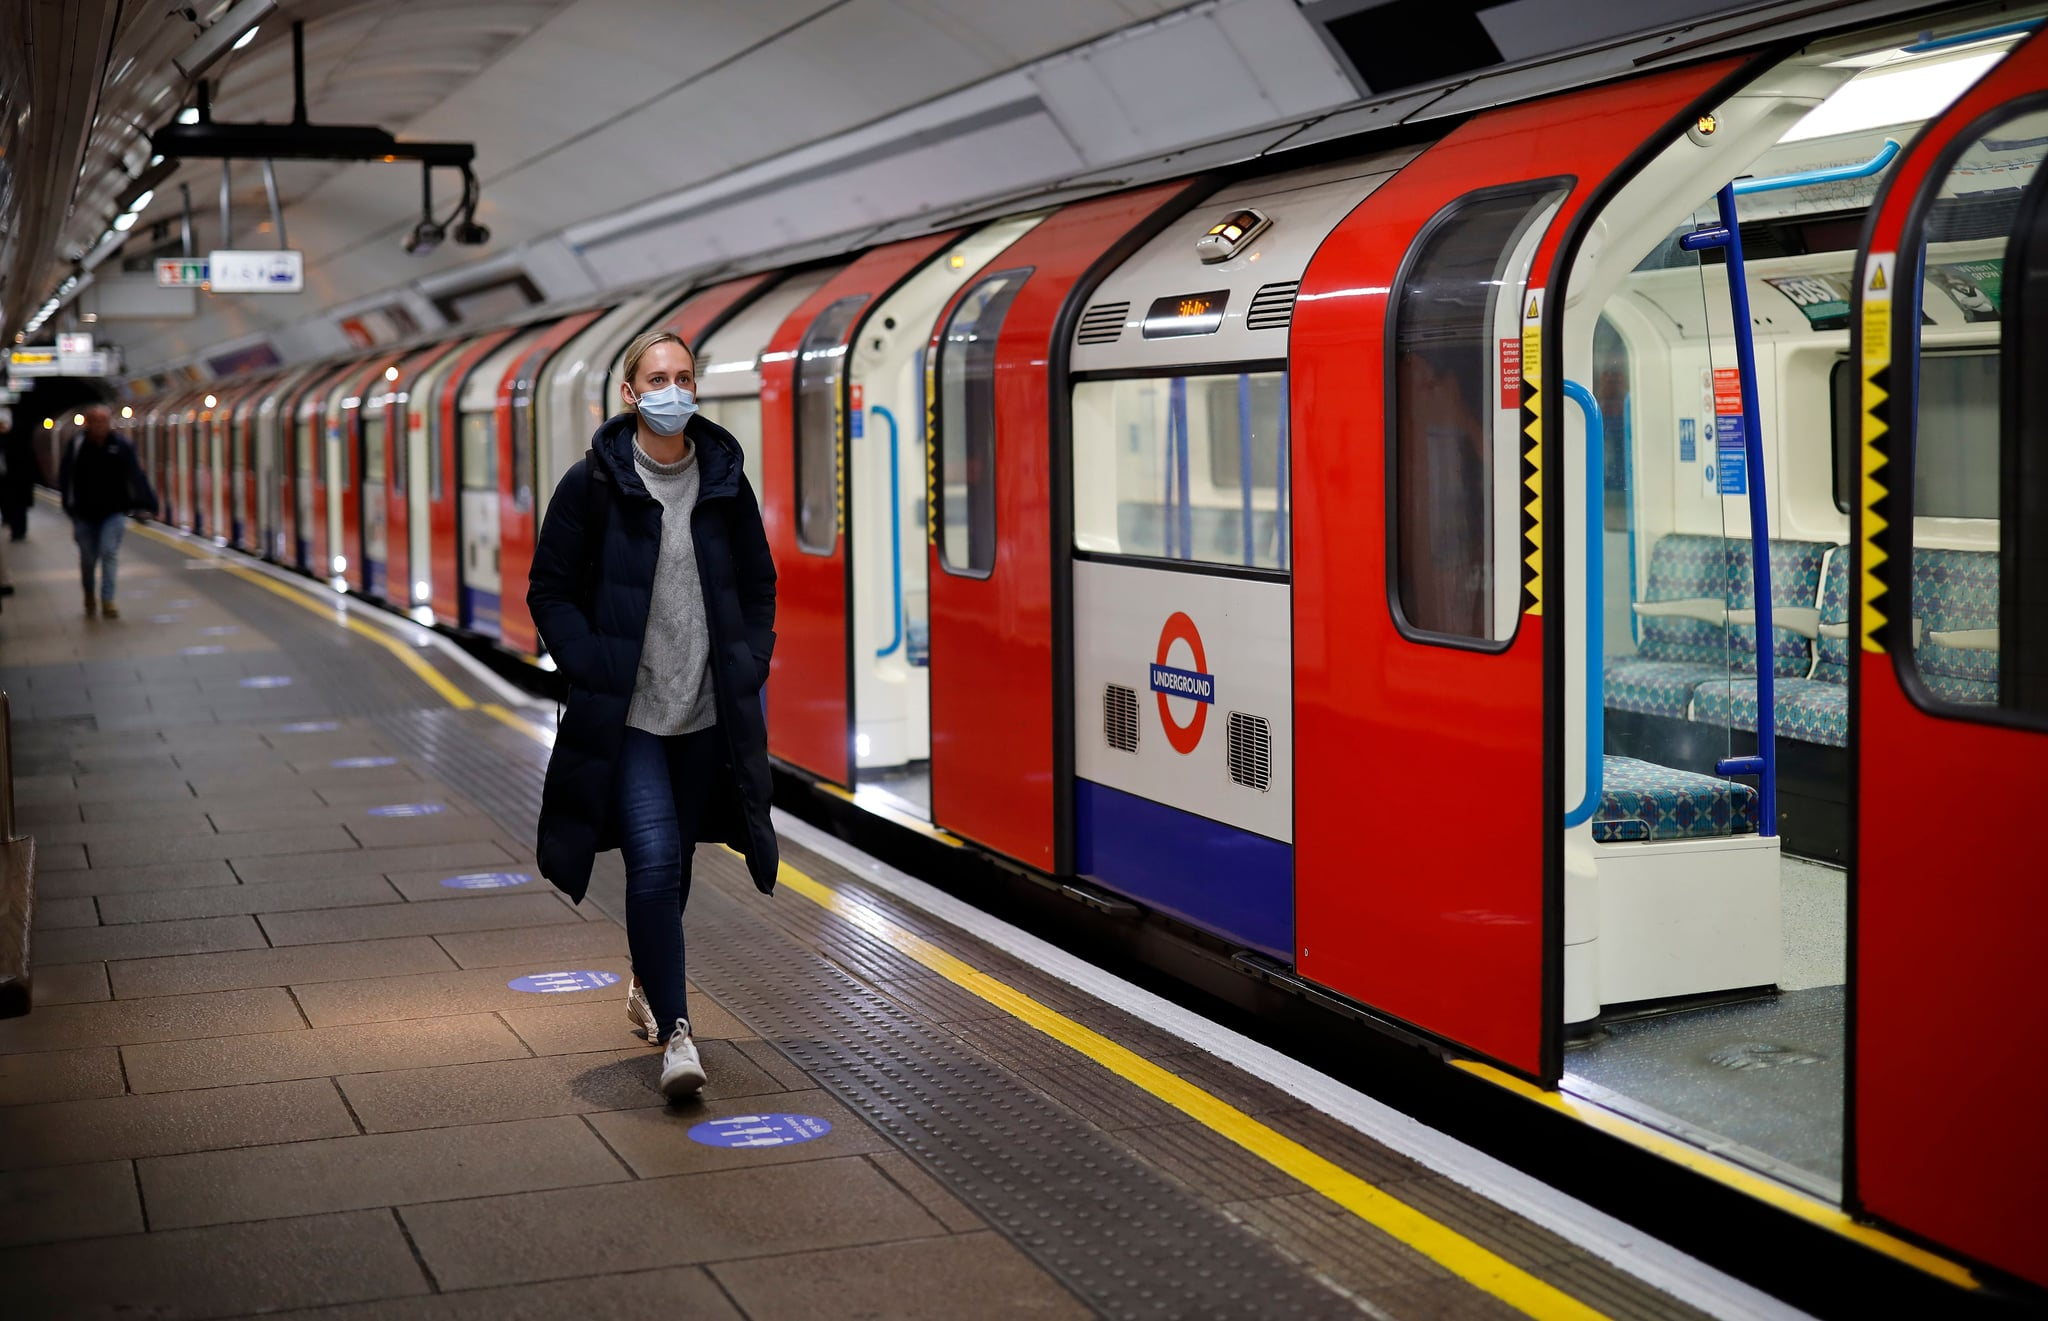 A woman wearing PPE (personal protective equipment), including a face mask as a precautionary measure against COVID-19, walks along the platform alongside a London Underground Tube train in the morning rush hour, on May 11, 2020, as life in Britain continues during the nationwide lockdown due to the novel coronavirus pandemic. - British Prime Minister Boris Johnson on May 10 announced a phased plan to ease a nationwide coronavirus lockdown, with schools and shops to begin opening from June 1 -- as long as infection rates stay low. (Photo by Tolga Akmen / AFP) (Photo by TOLGA AKMEN/AFP via Getty Images)